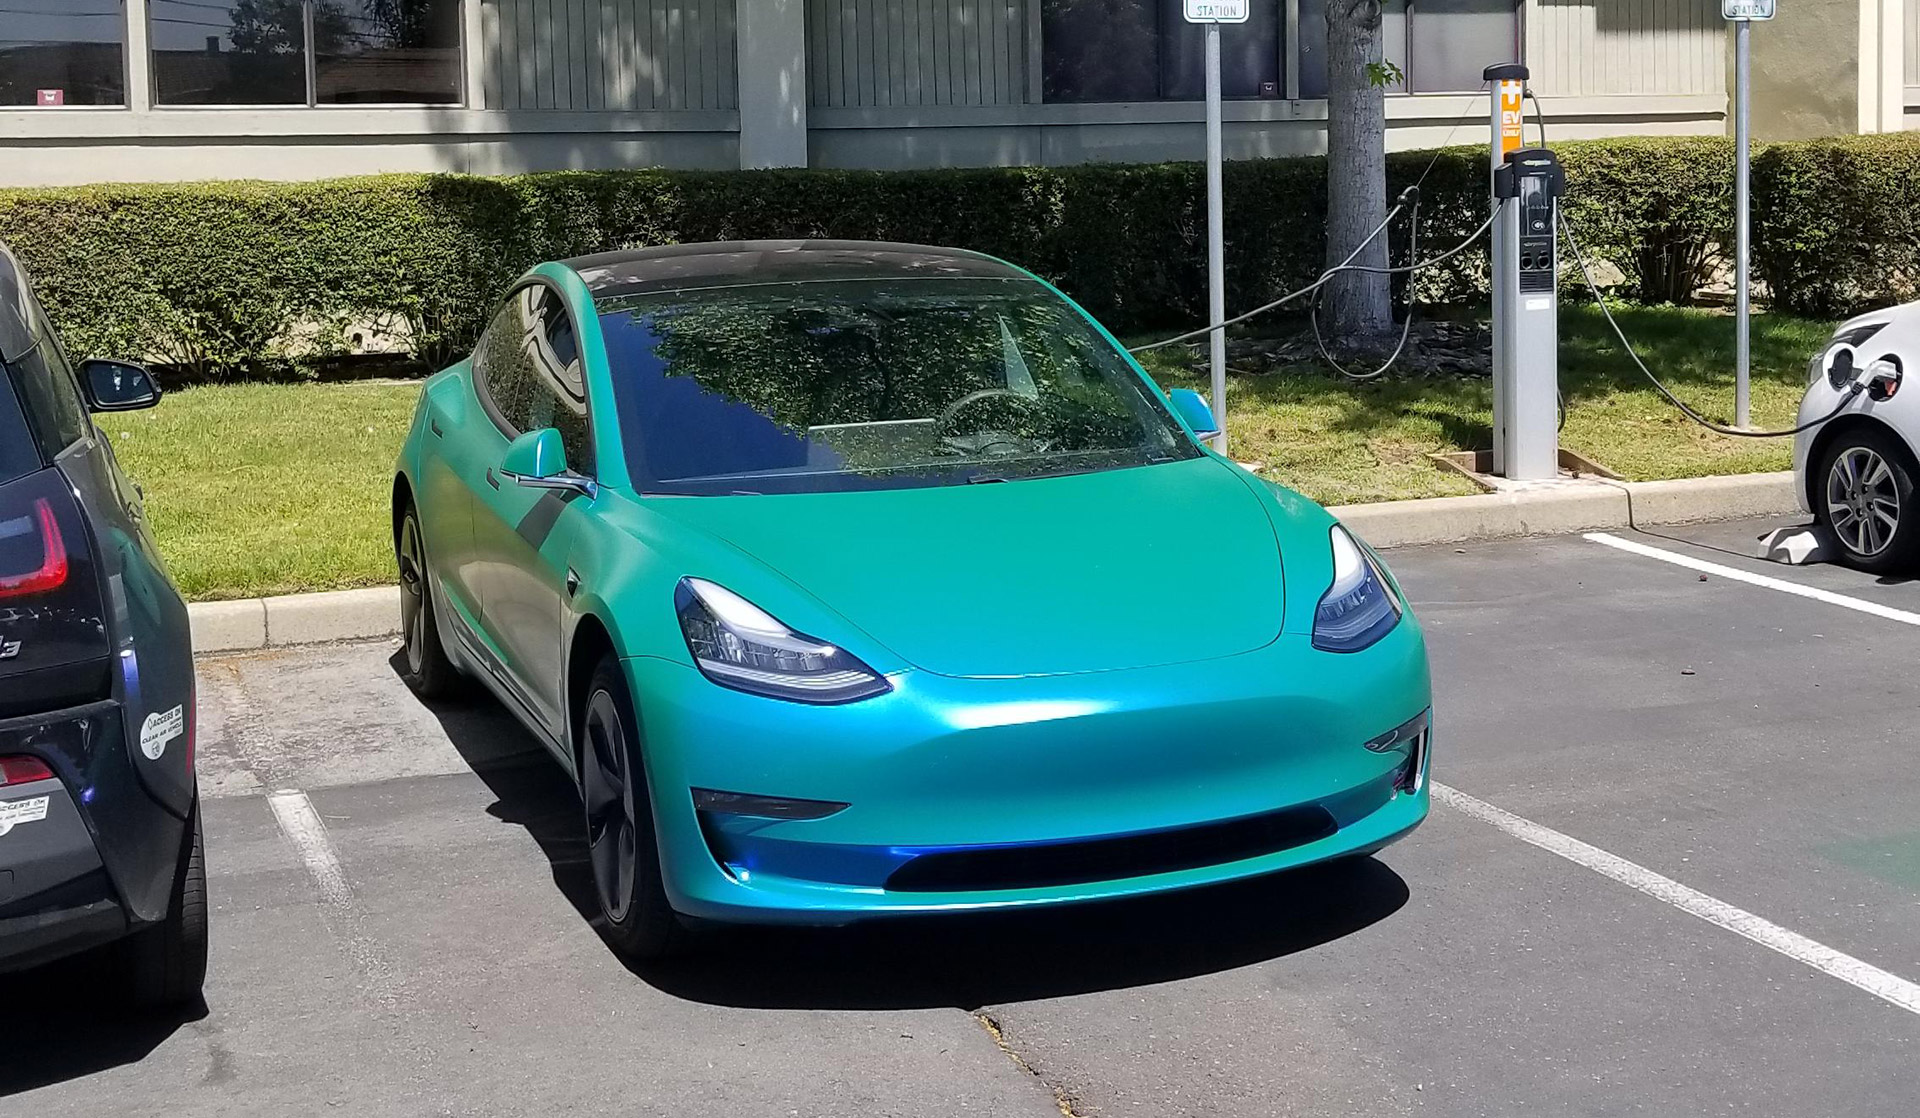 Tesla Model 3 in Smurf Blue and Green Gradient